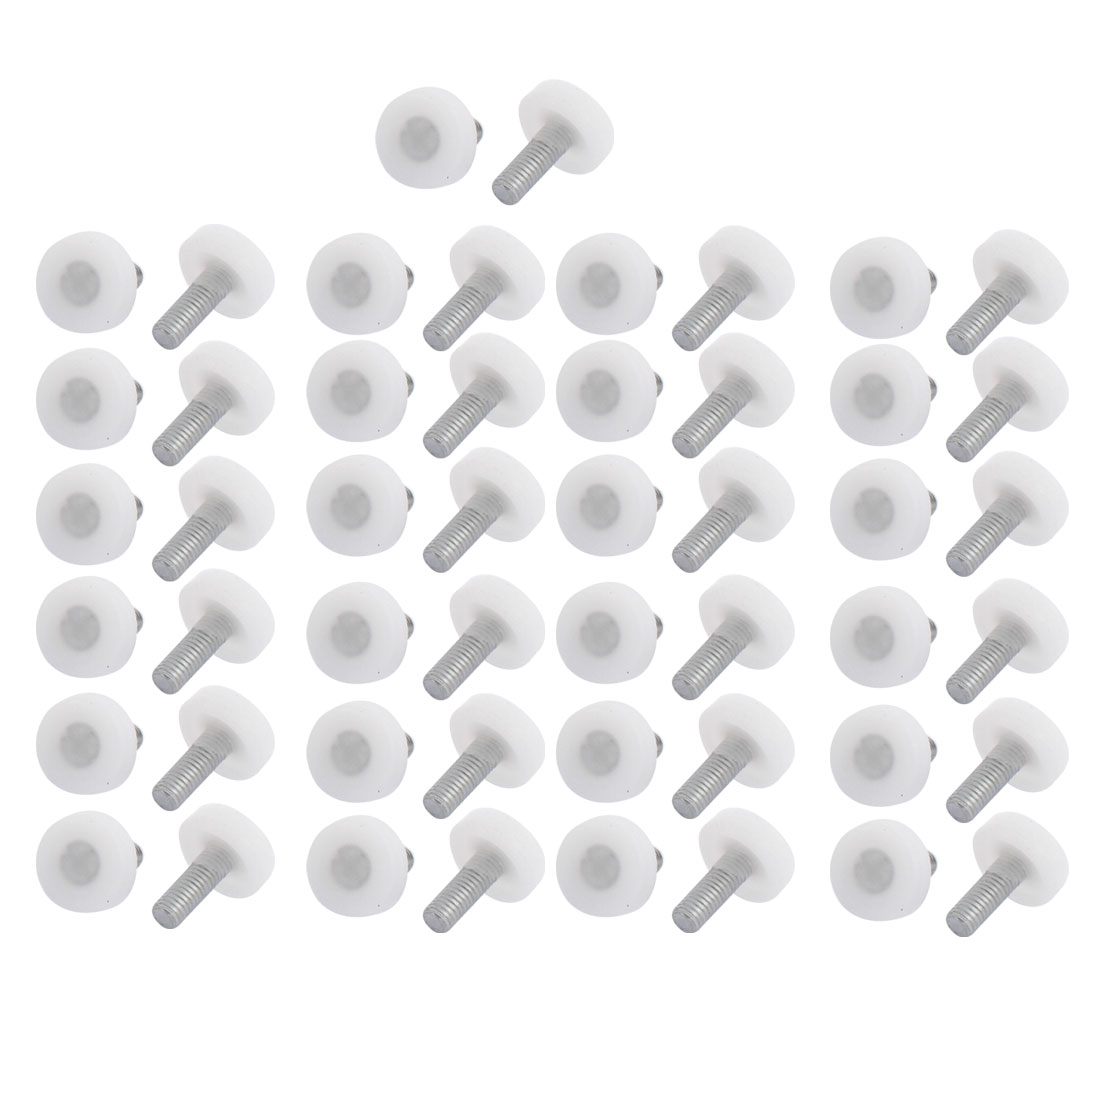 Plastic Base Adjustable Bumper Leveling Foot M8x20mm Thread 50PCS